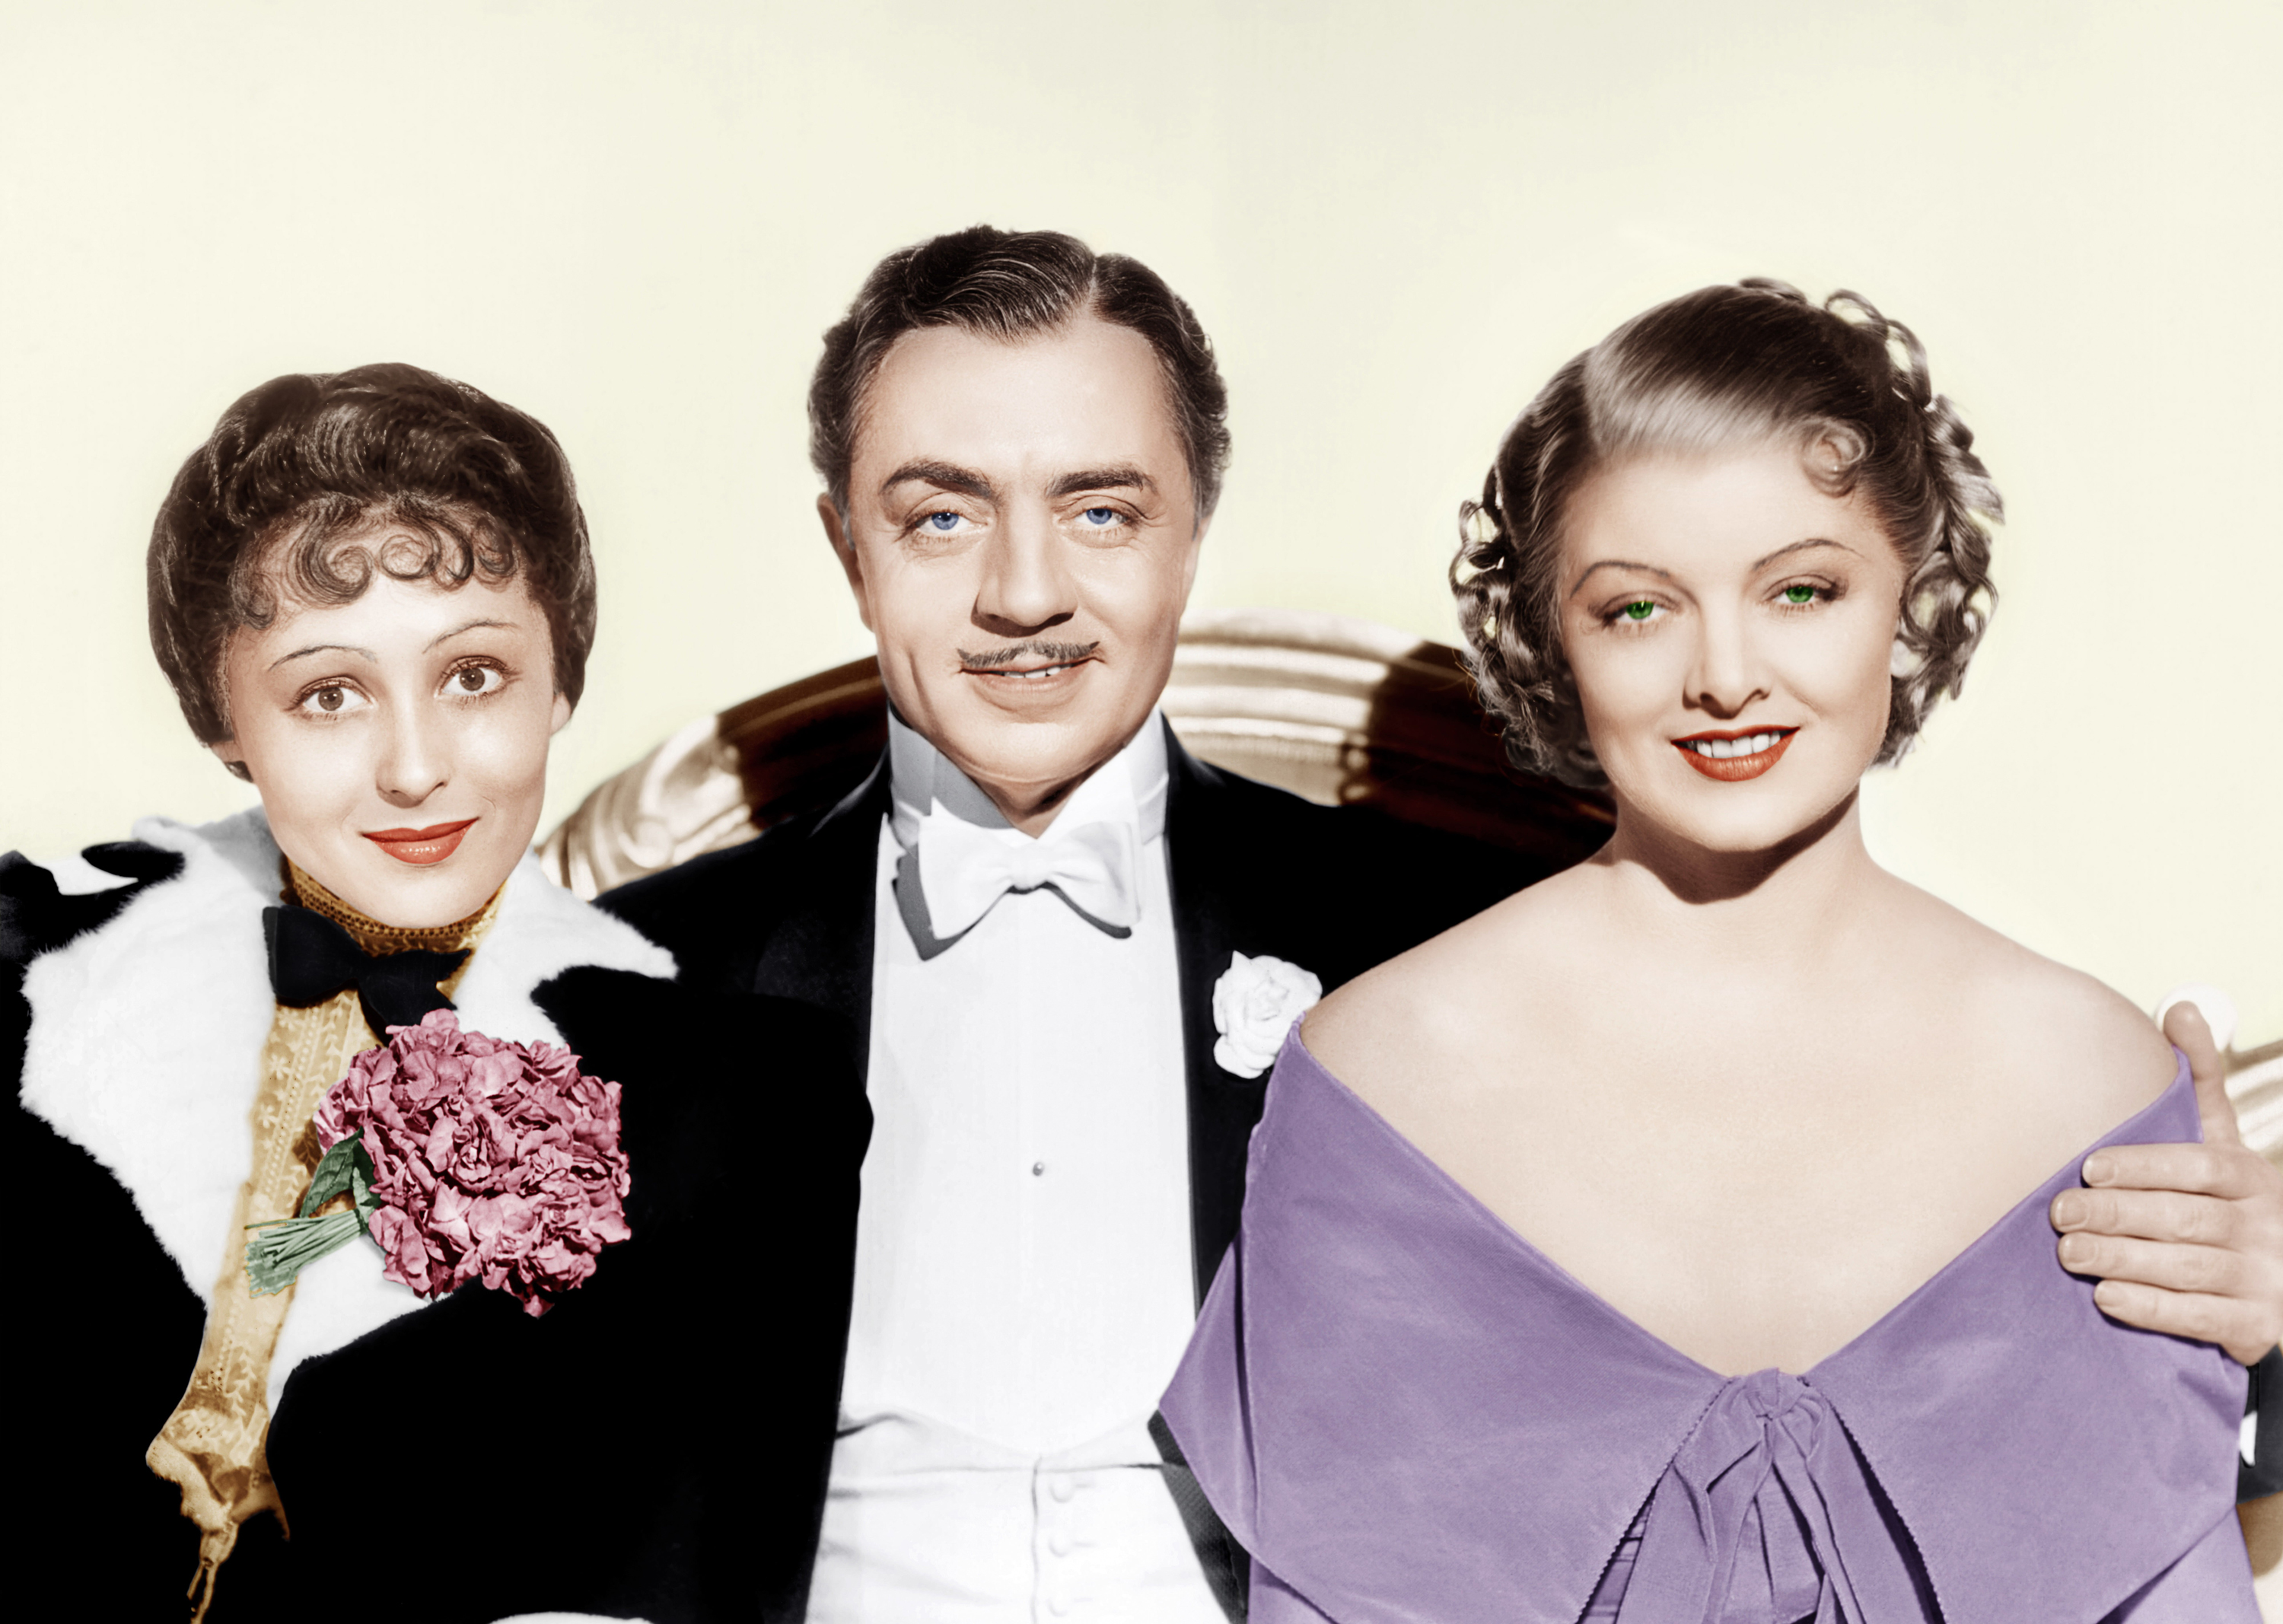 William Powell in The Great Ziegfeld with (L to R) Luise Rainer, William Powell, Myrna Loy